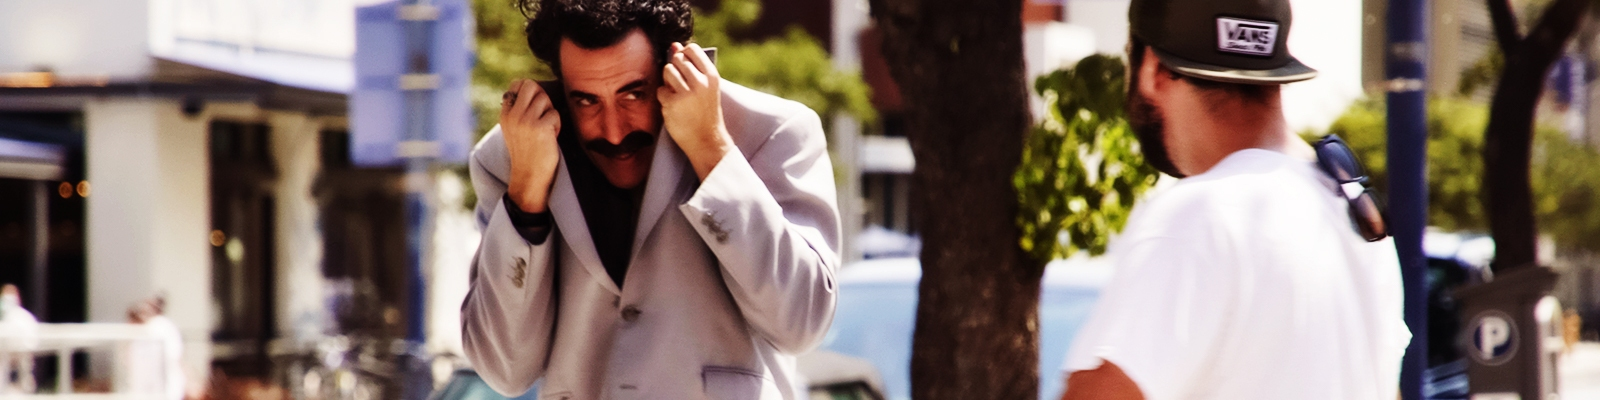 In 'Borat Subsequent Moviefilm,' The 'Victims' Have Become The Performers